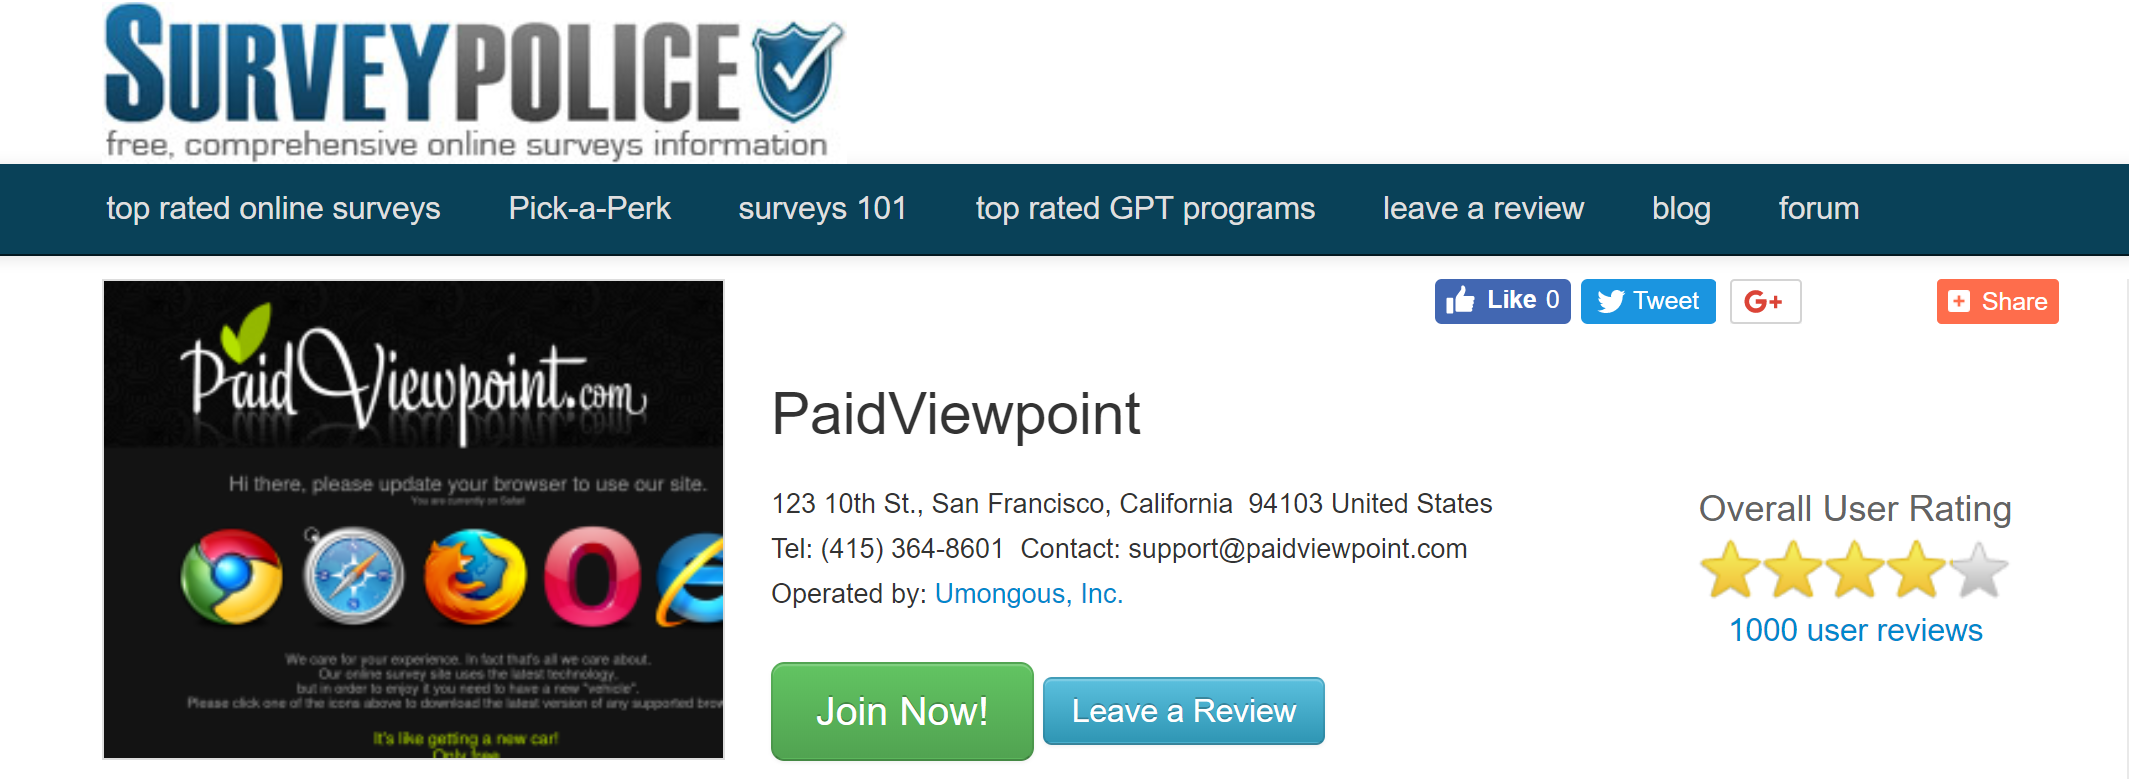 Highest Rated Survey Website PaidViewpoint.com Hits 1,000 Reviews on SurveyPolice